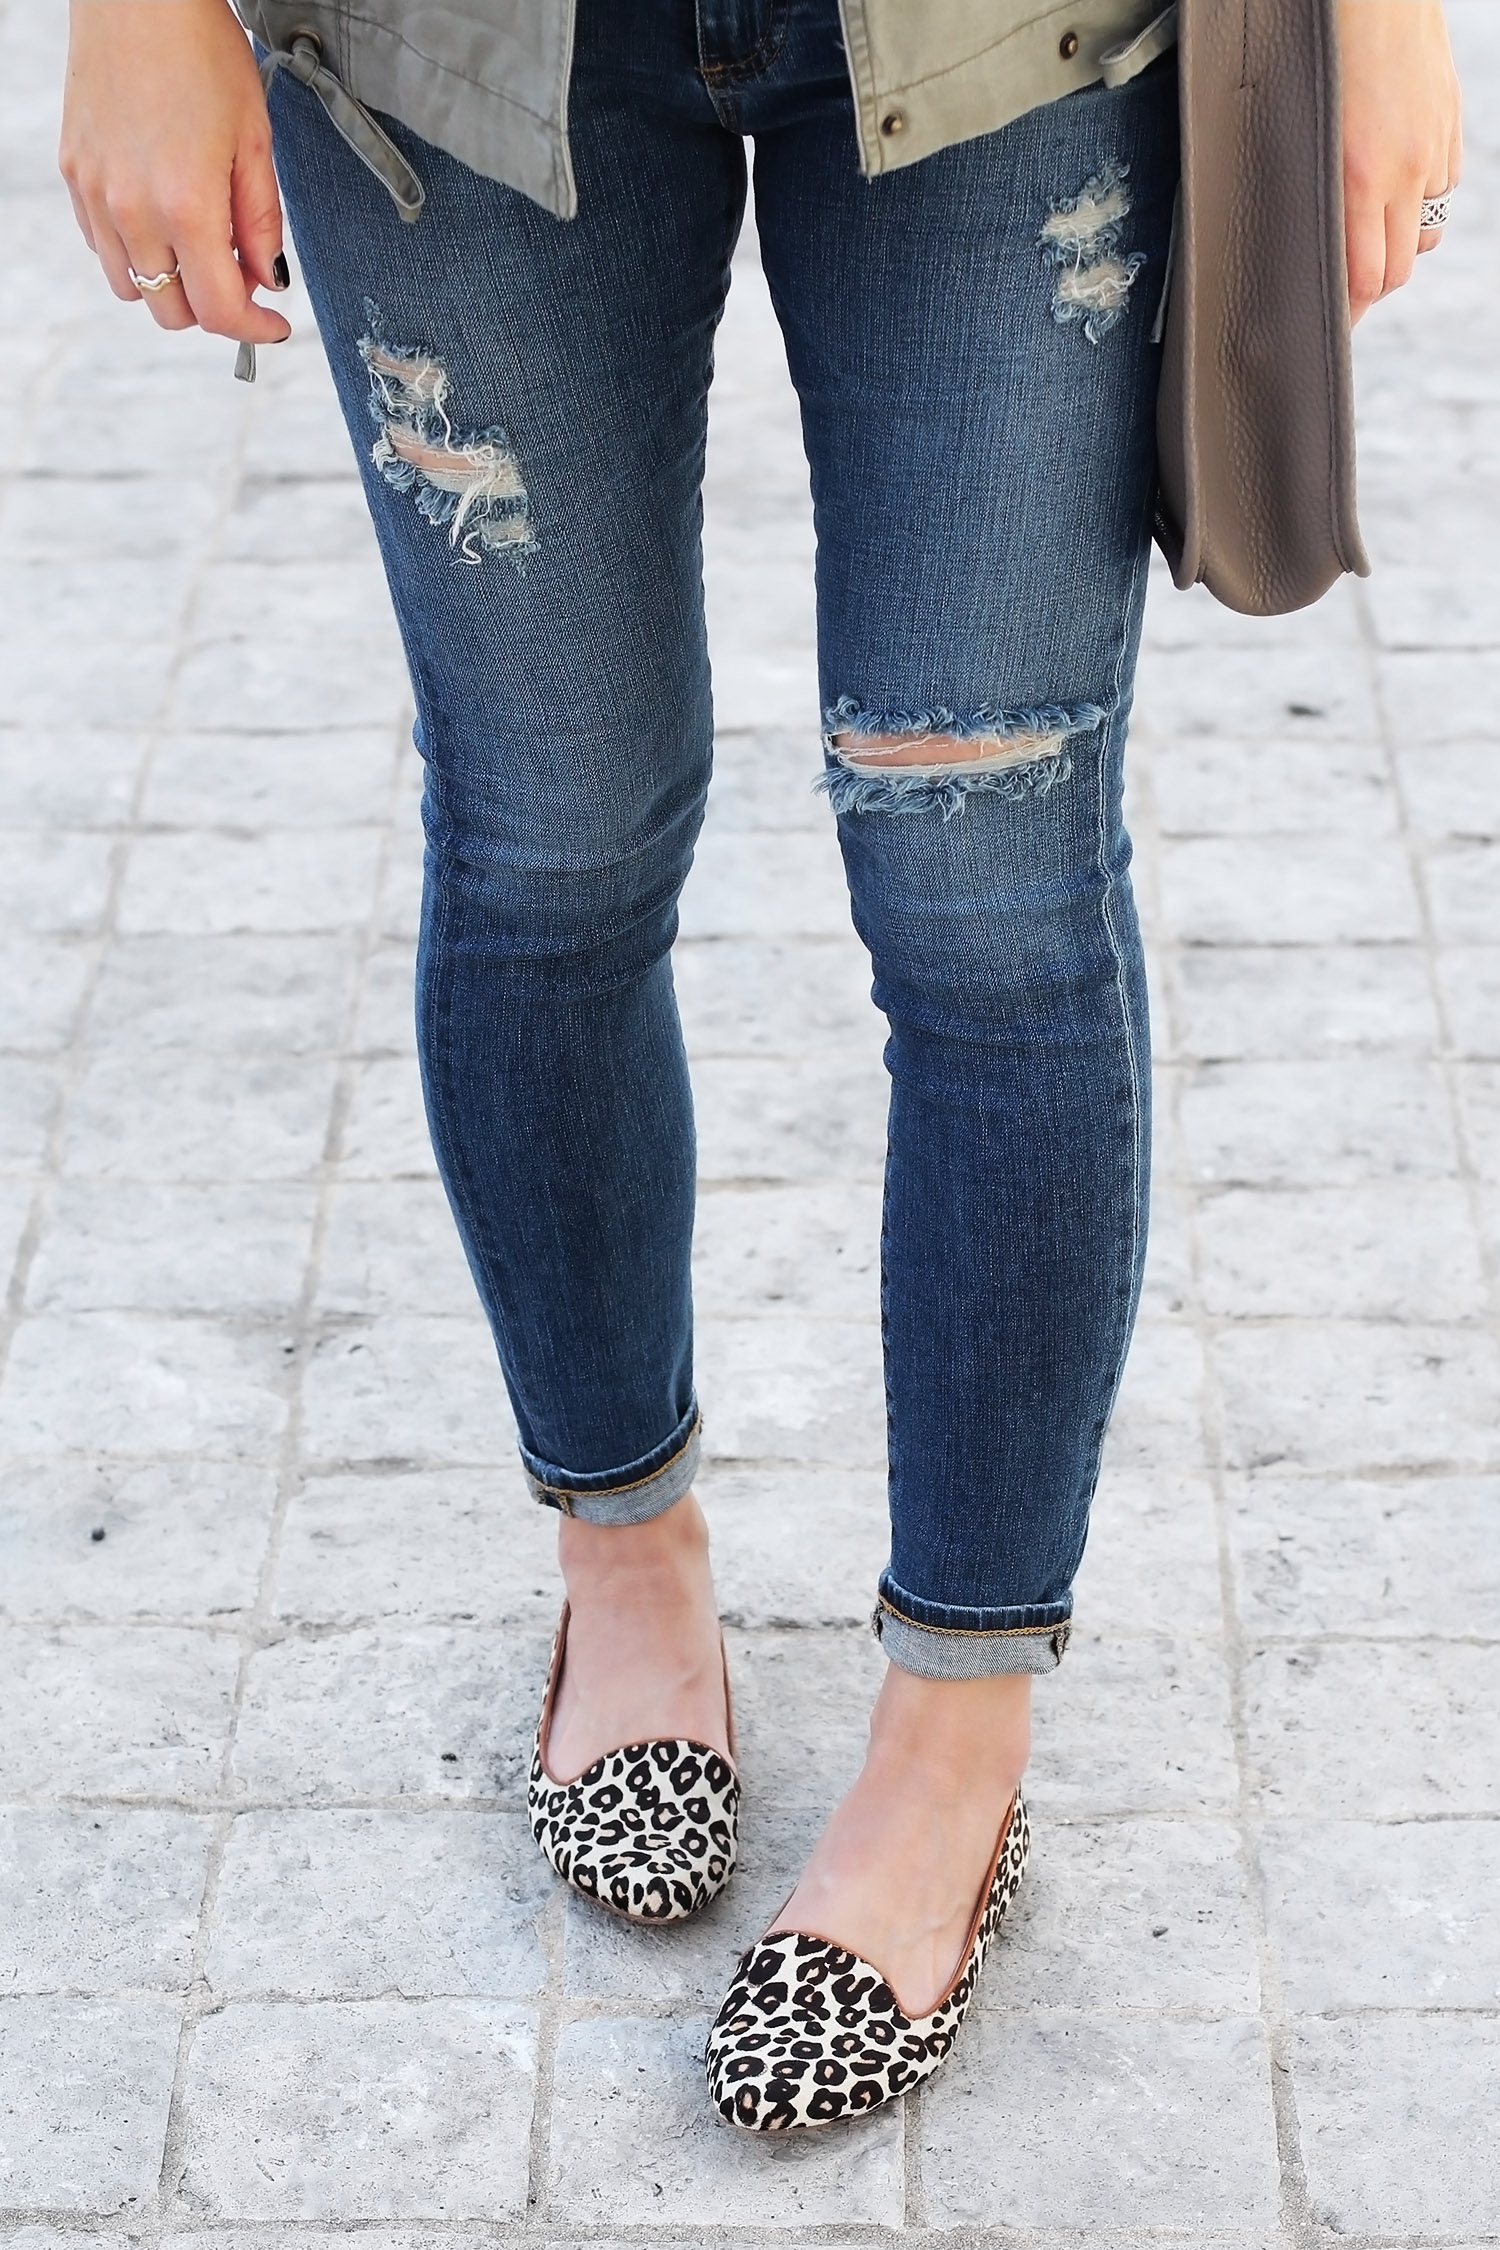 AG Distressed Jeans, Joie Animal Print Flats